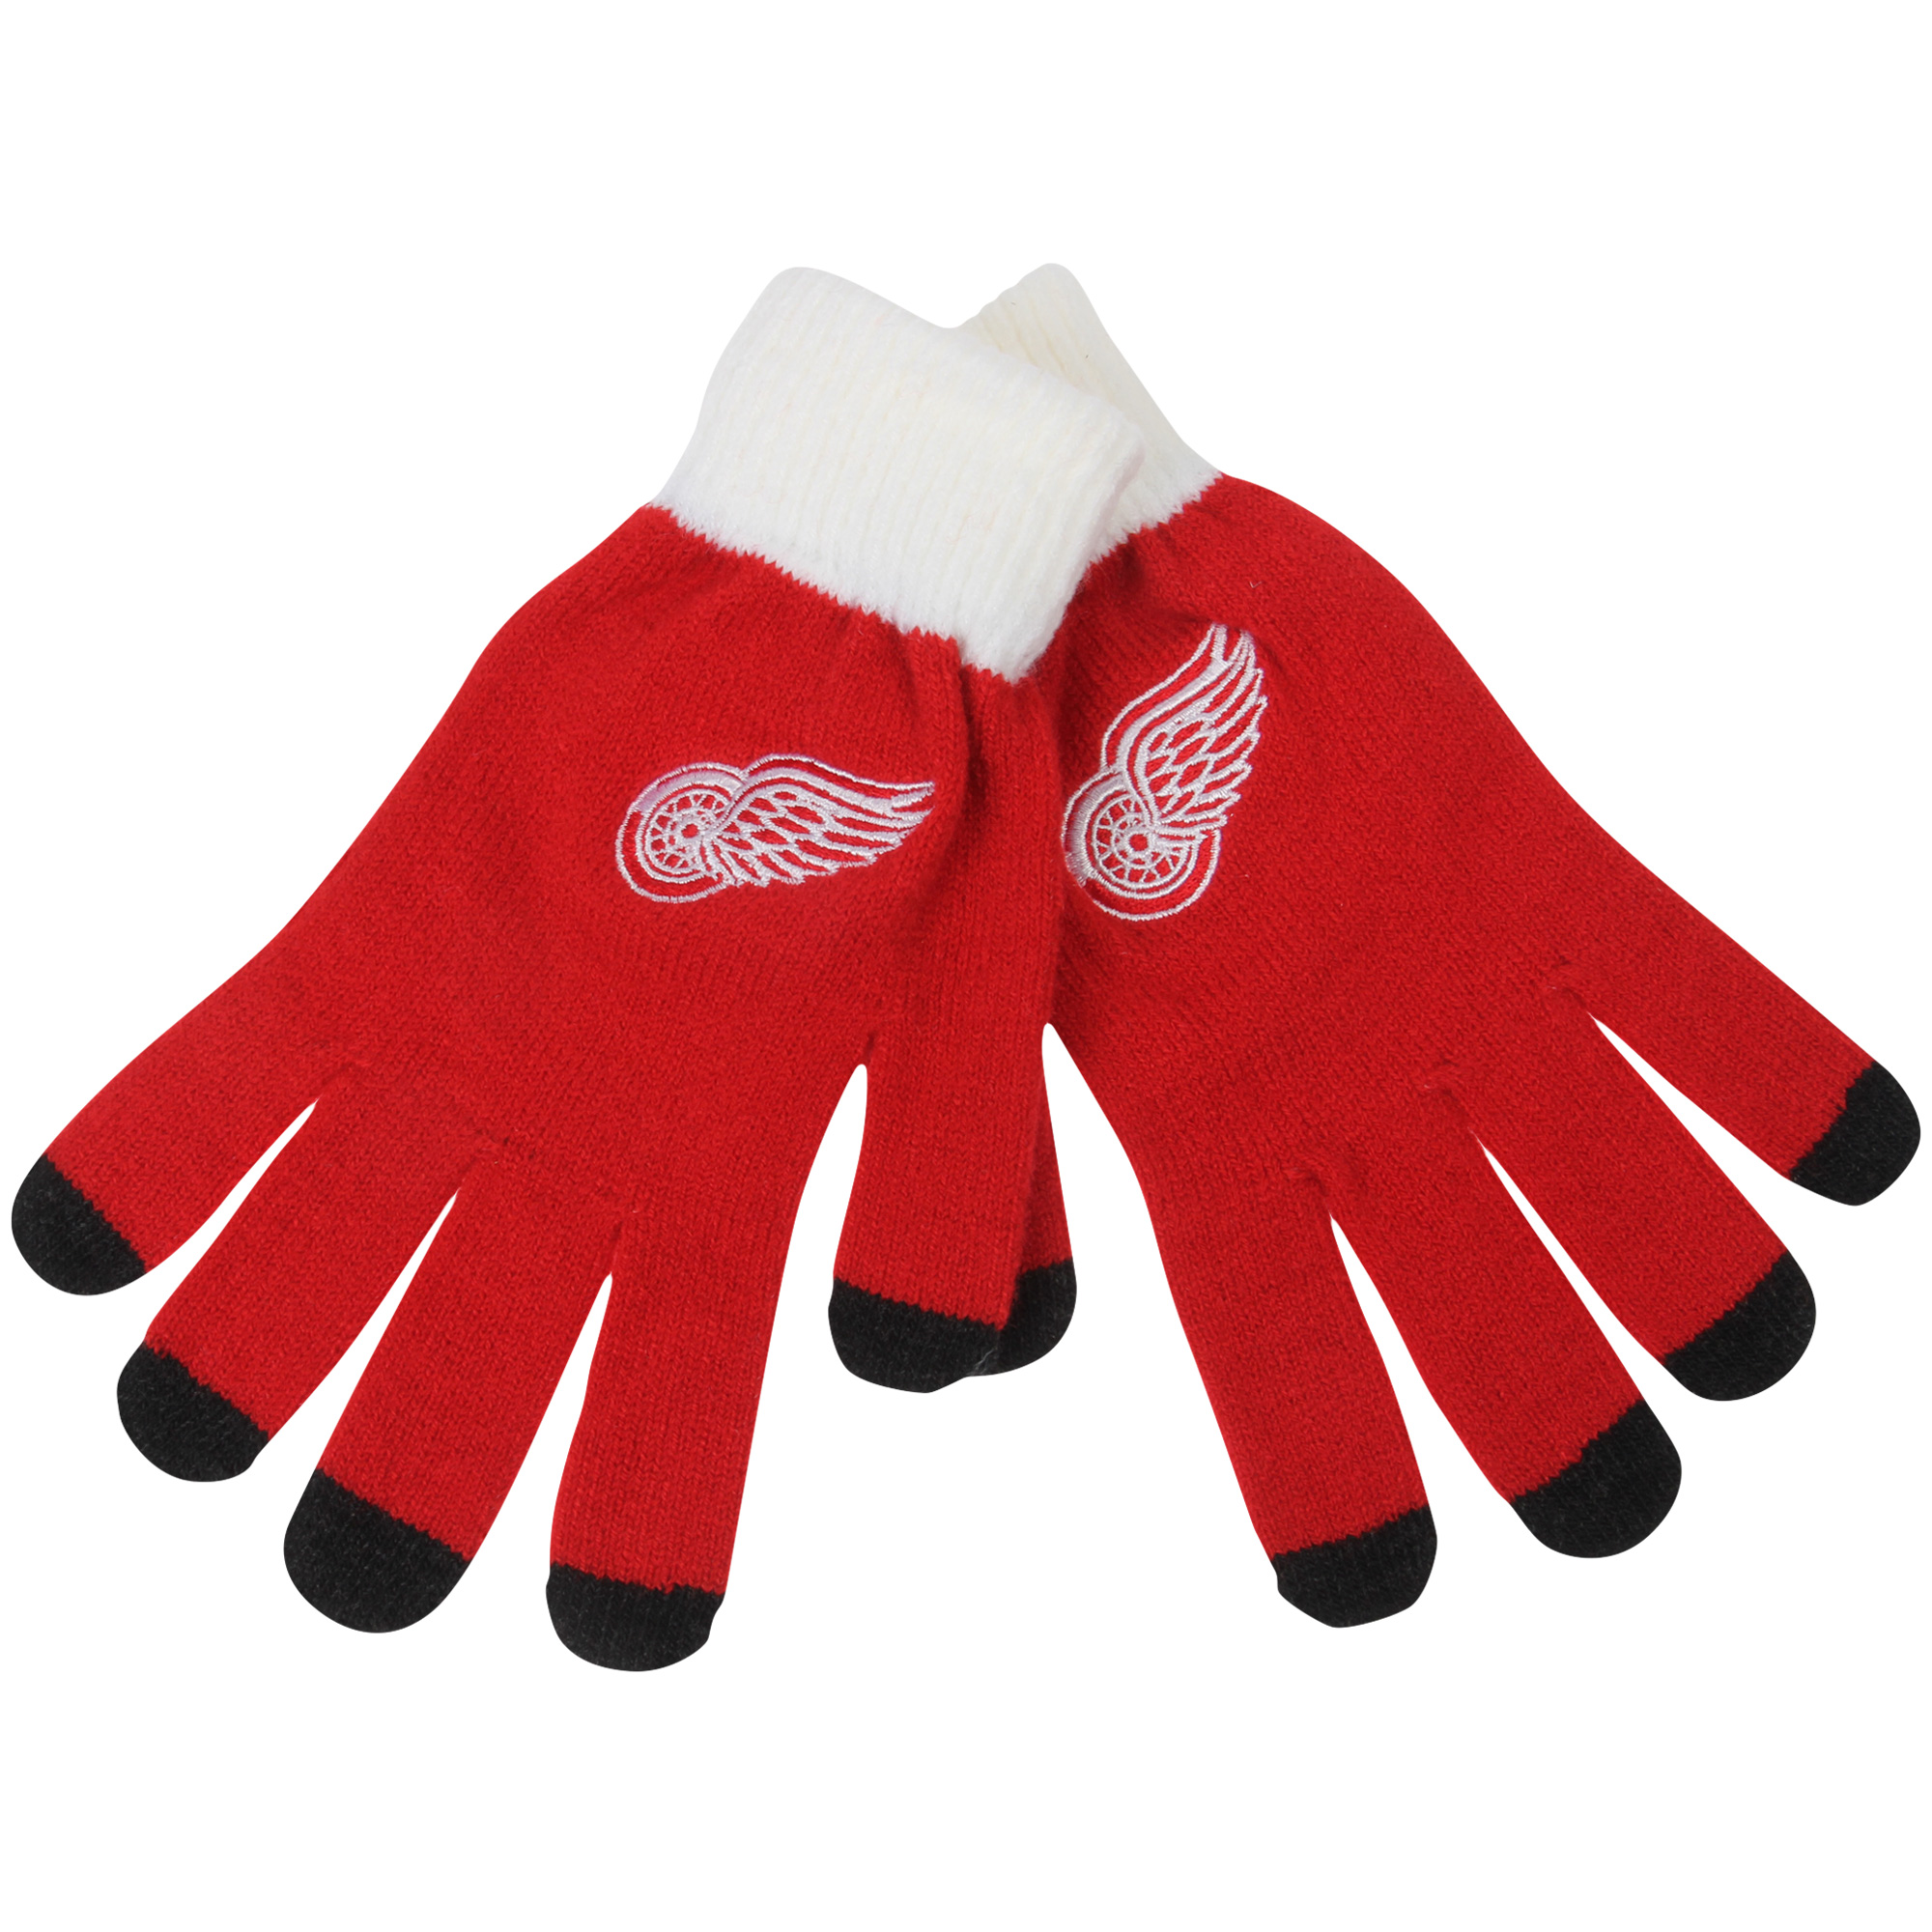 Detroit Red Wings Solid Knit Gloves No Size by TEAM BEANS INC/FOREVER COLLECTIBLES